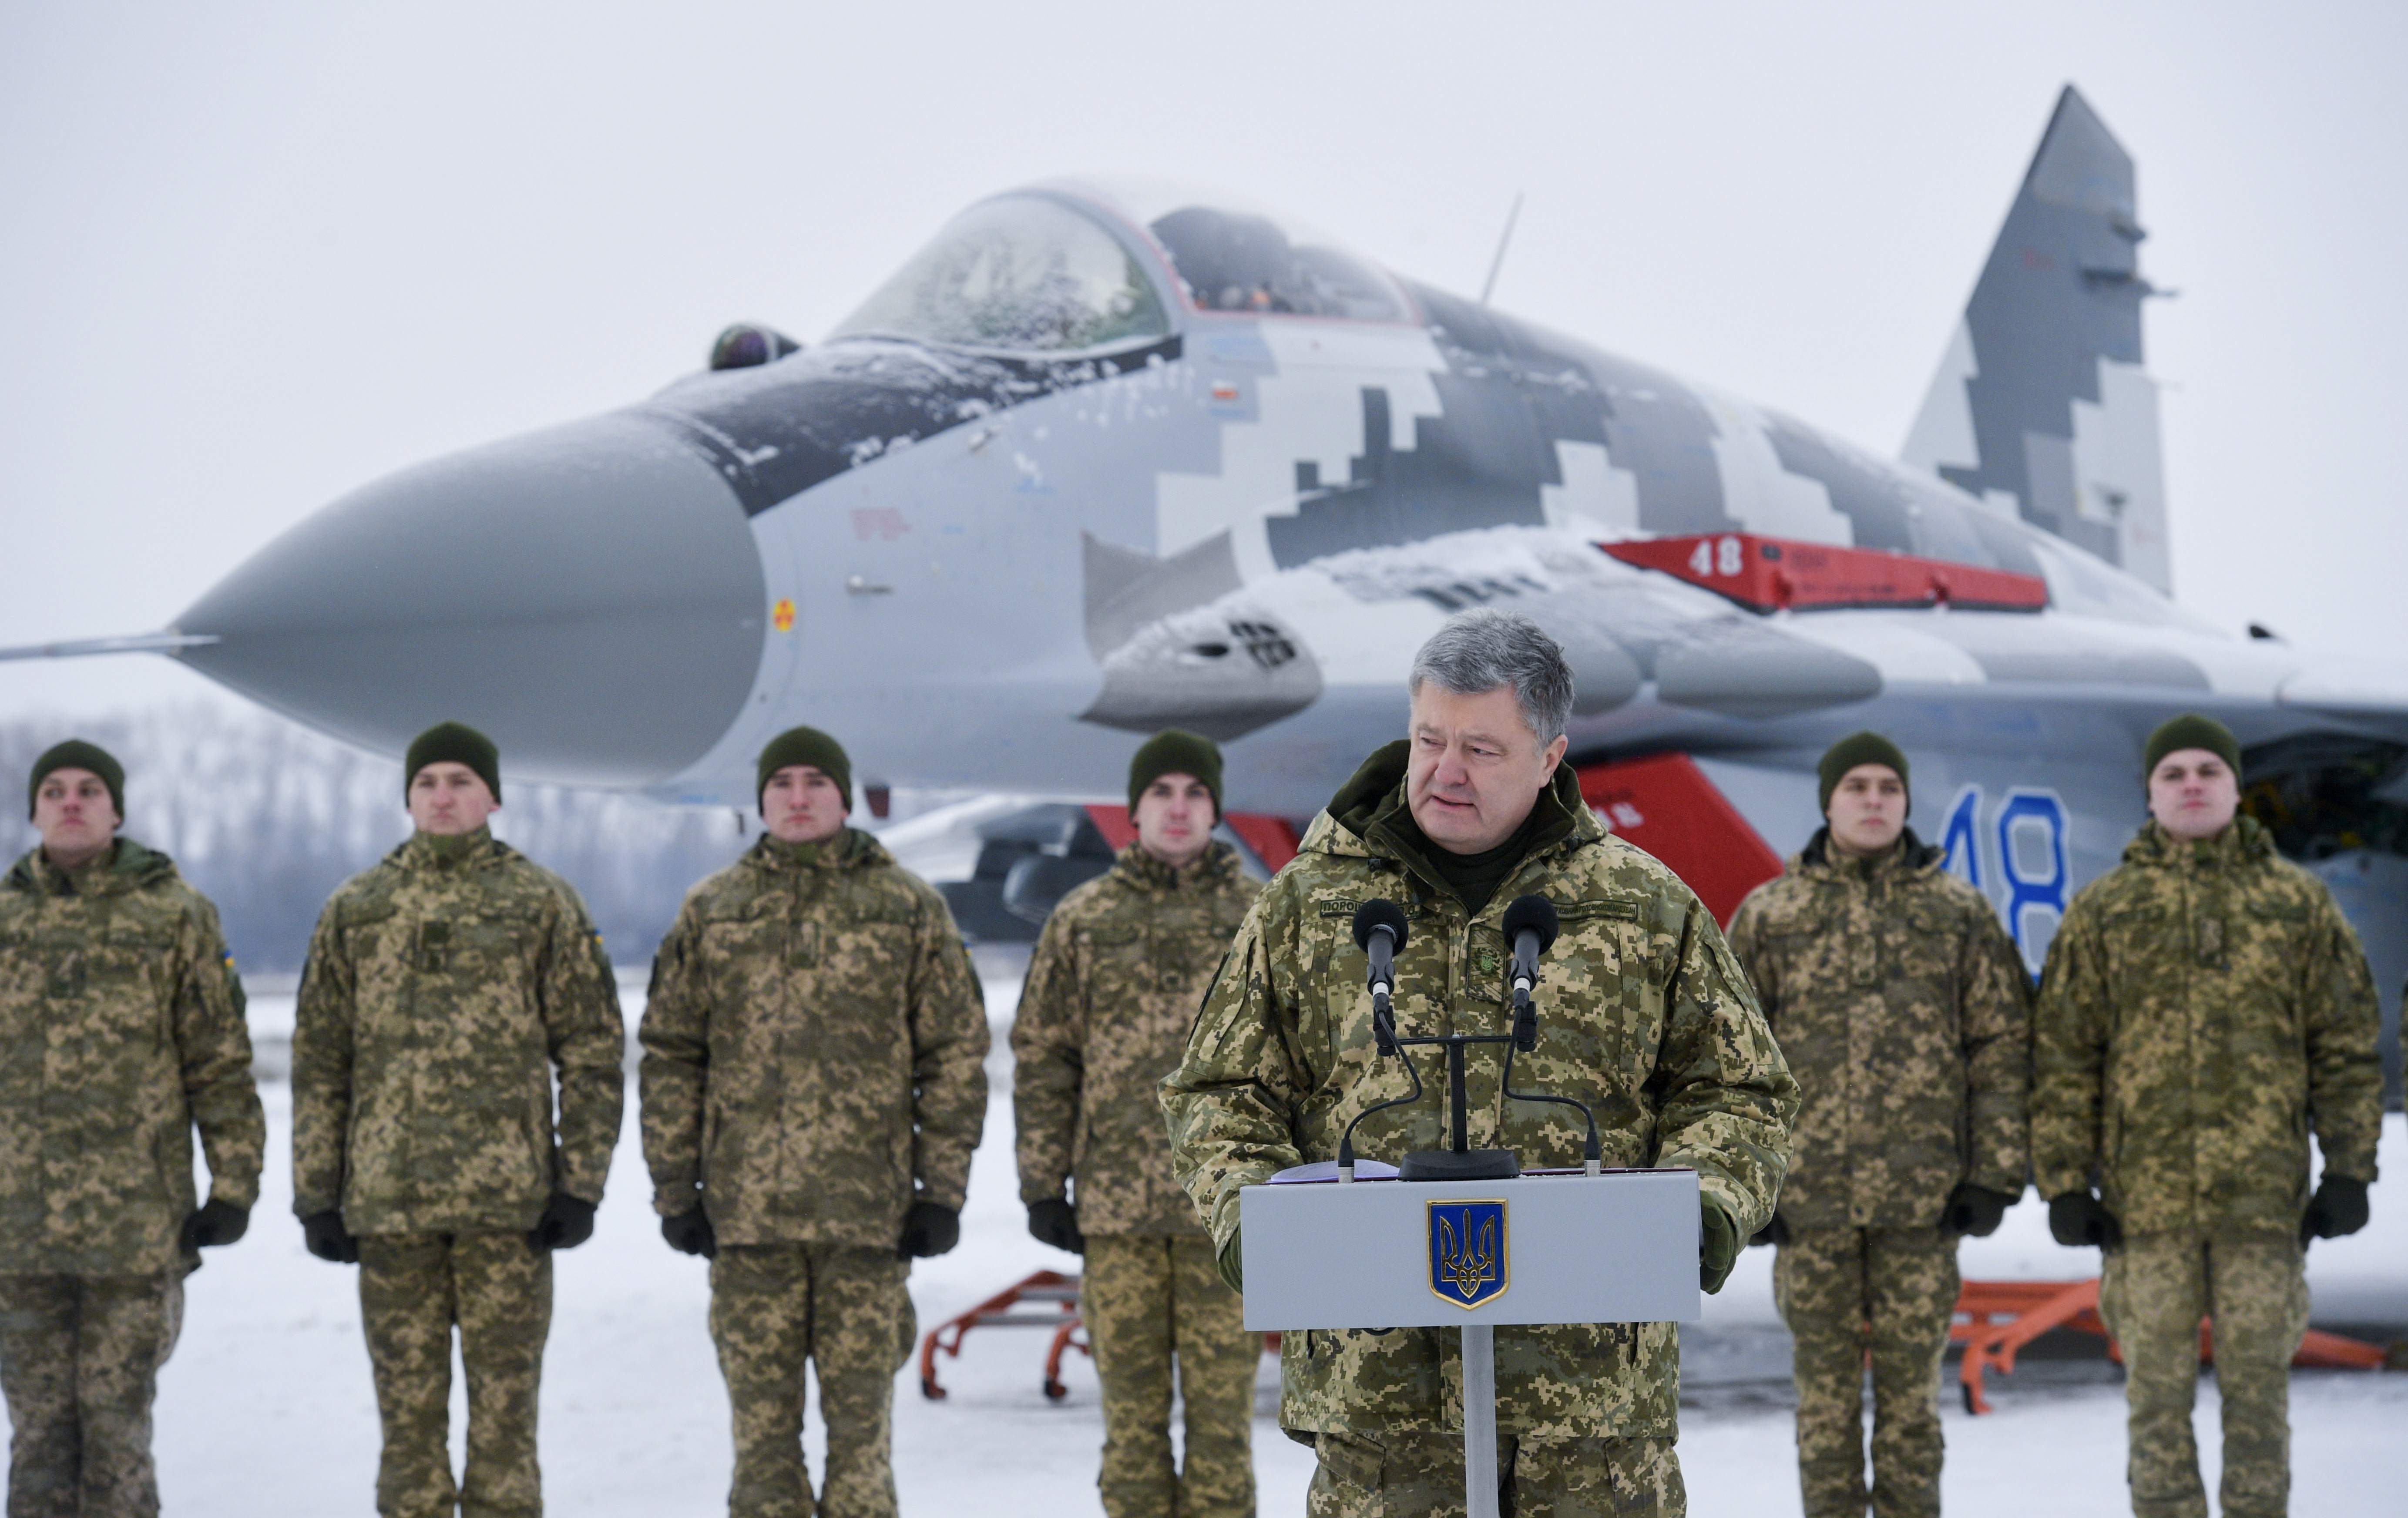 Ukrainian President Petro Poroshenko addresses the Armed Forces of Ukraine at the military airfield in Vasylkiv region, Ukraine, Saturday, Dec. 1, 2018, as Poroshenko transferred new aircraft and military equipment to the Ukrainian Armed Forces as part of his working visit. Russia and Ukraine traded blame as tensions between the neighbouring countries have escalated over recent days. (Mykola Lazarenko, Presidential Press Service via AP)